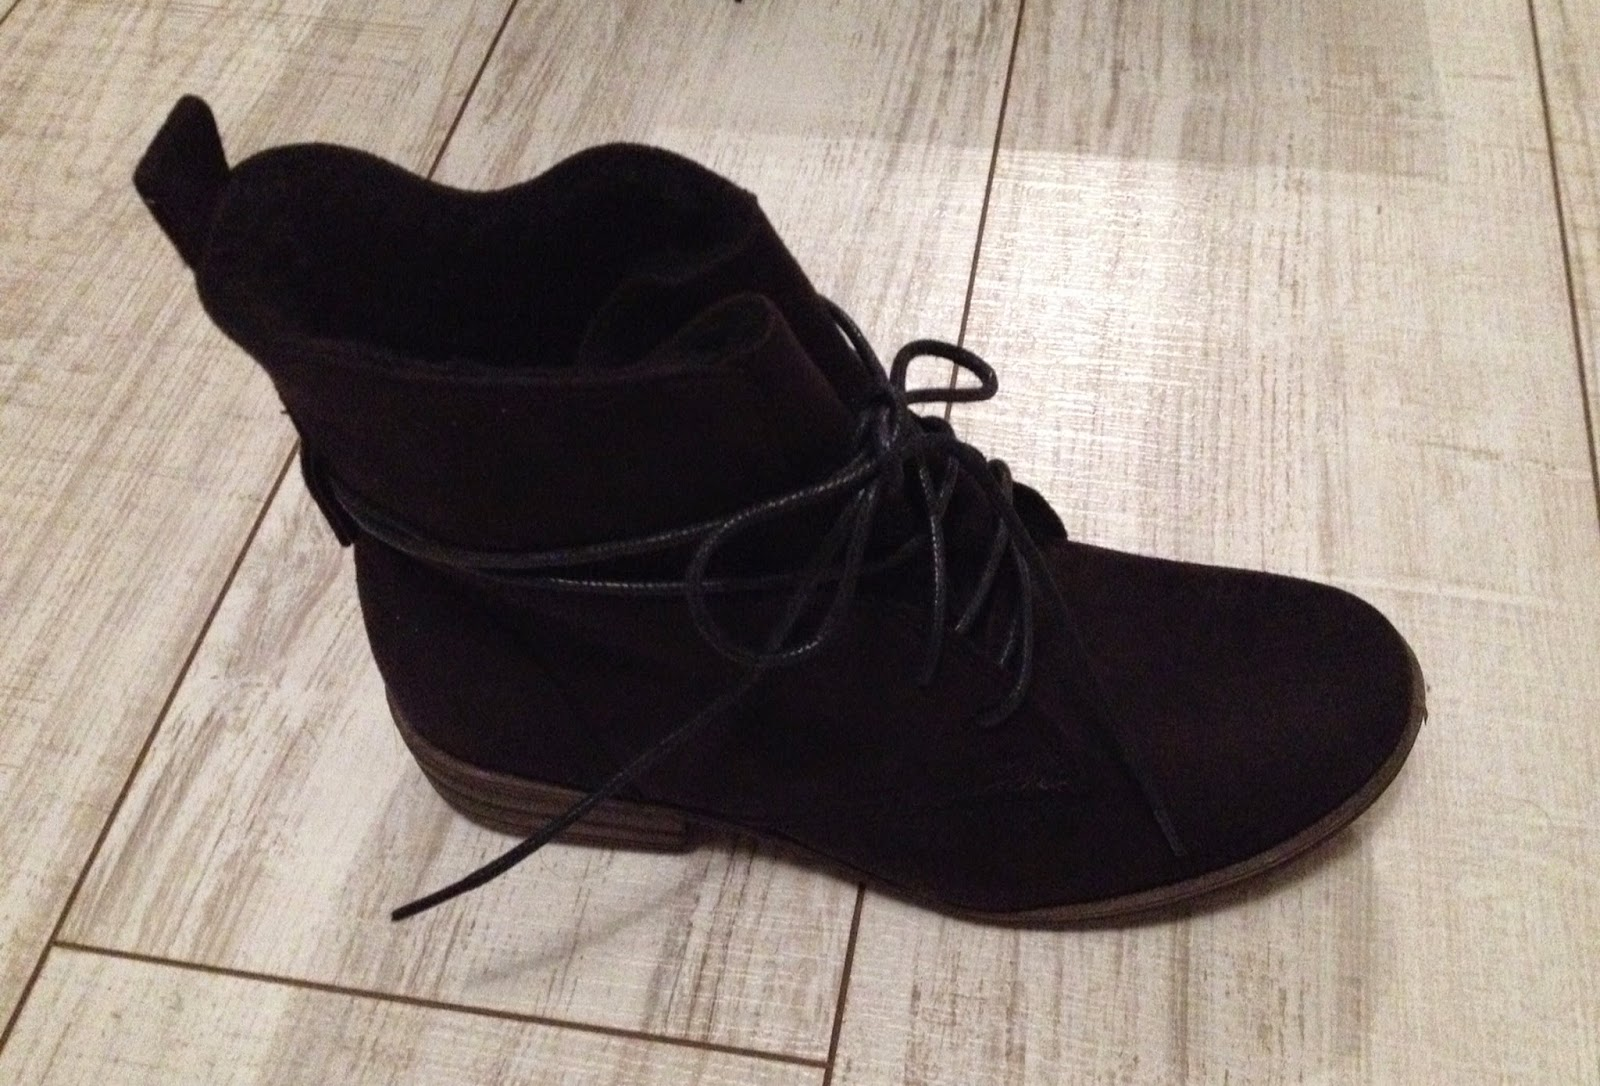 http://www.globeshoppeuse.com/2014/11/mode-shopping-mes-nouvelles-bottines-marypaz.html